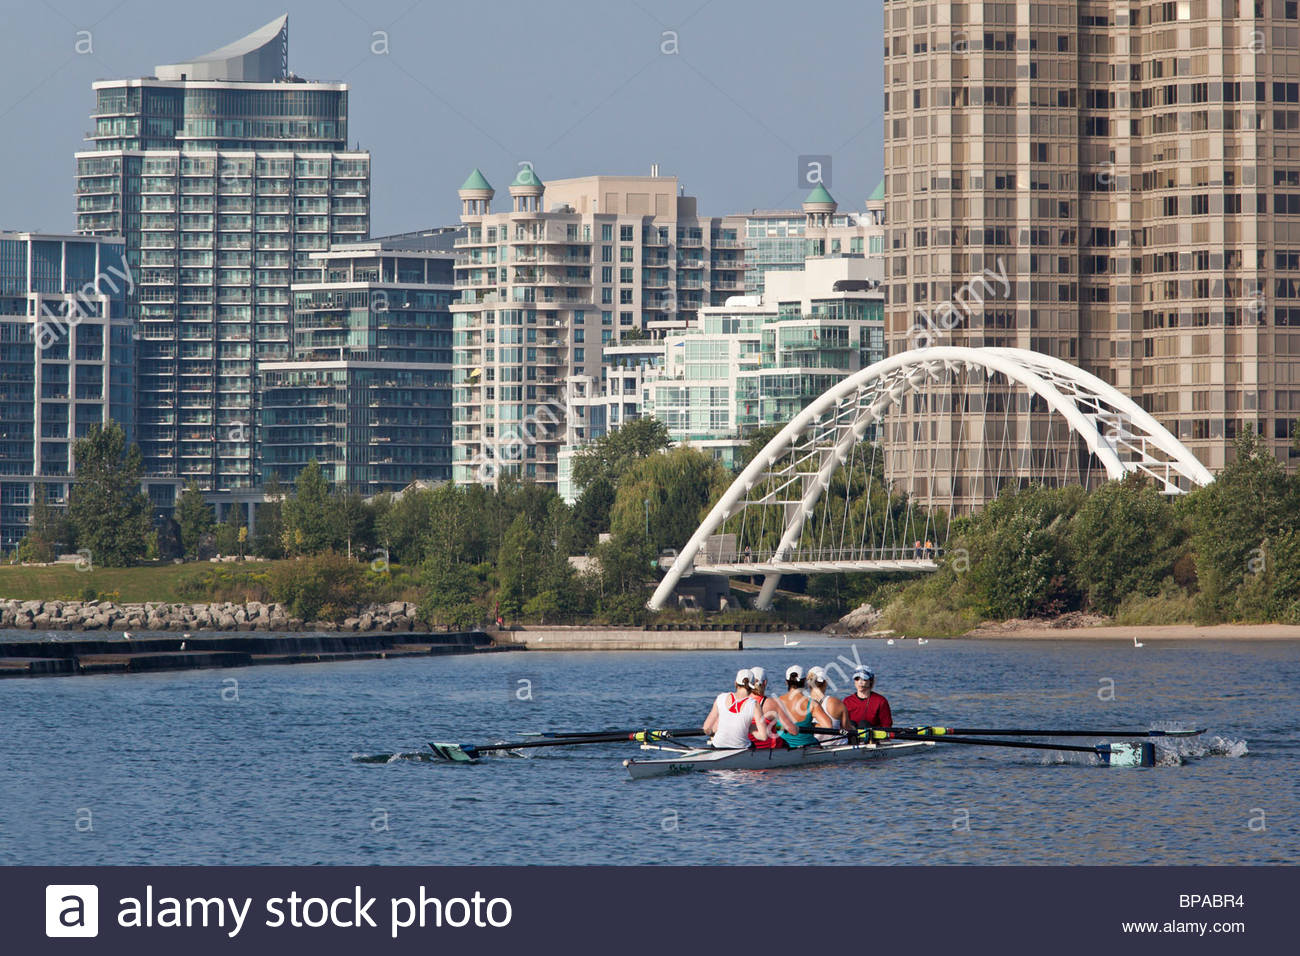 Women sweep rowers in a coxed four in front of condominiums at the mouth of the Humber River in Toronto Ontario - Stock Image